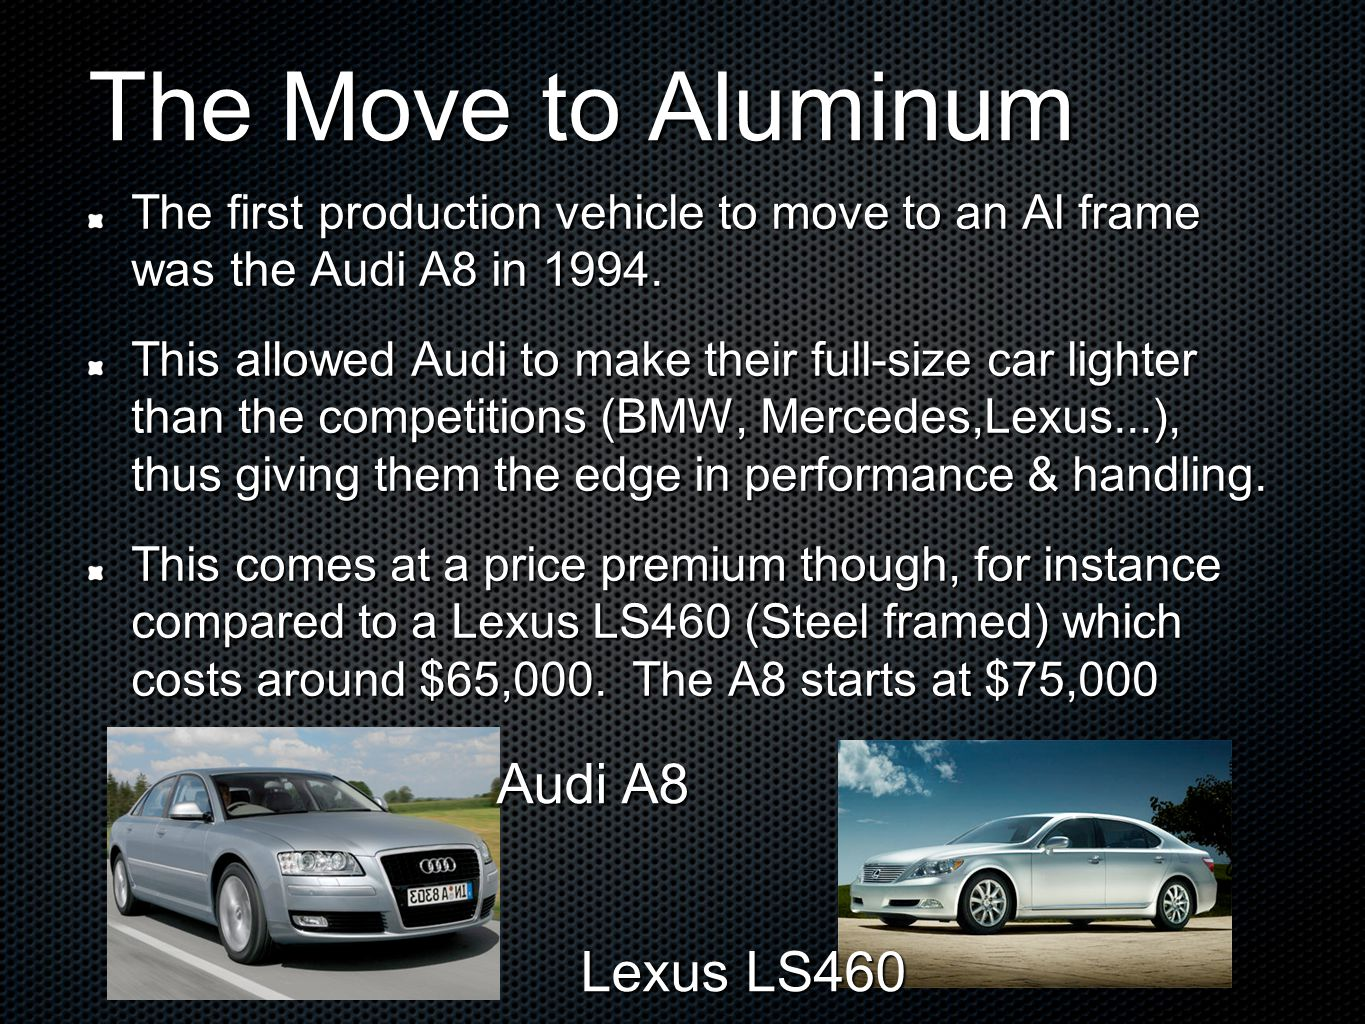 The Move to Aluminum The first production vehicle to move to an Al frame was the Audi A8 in 1994.